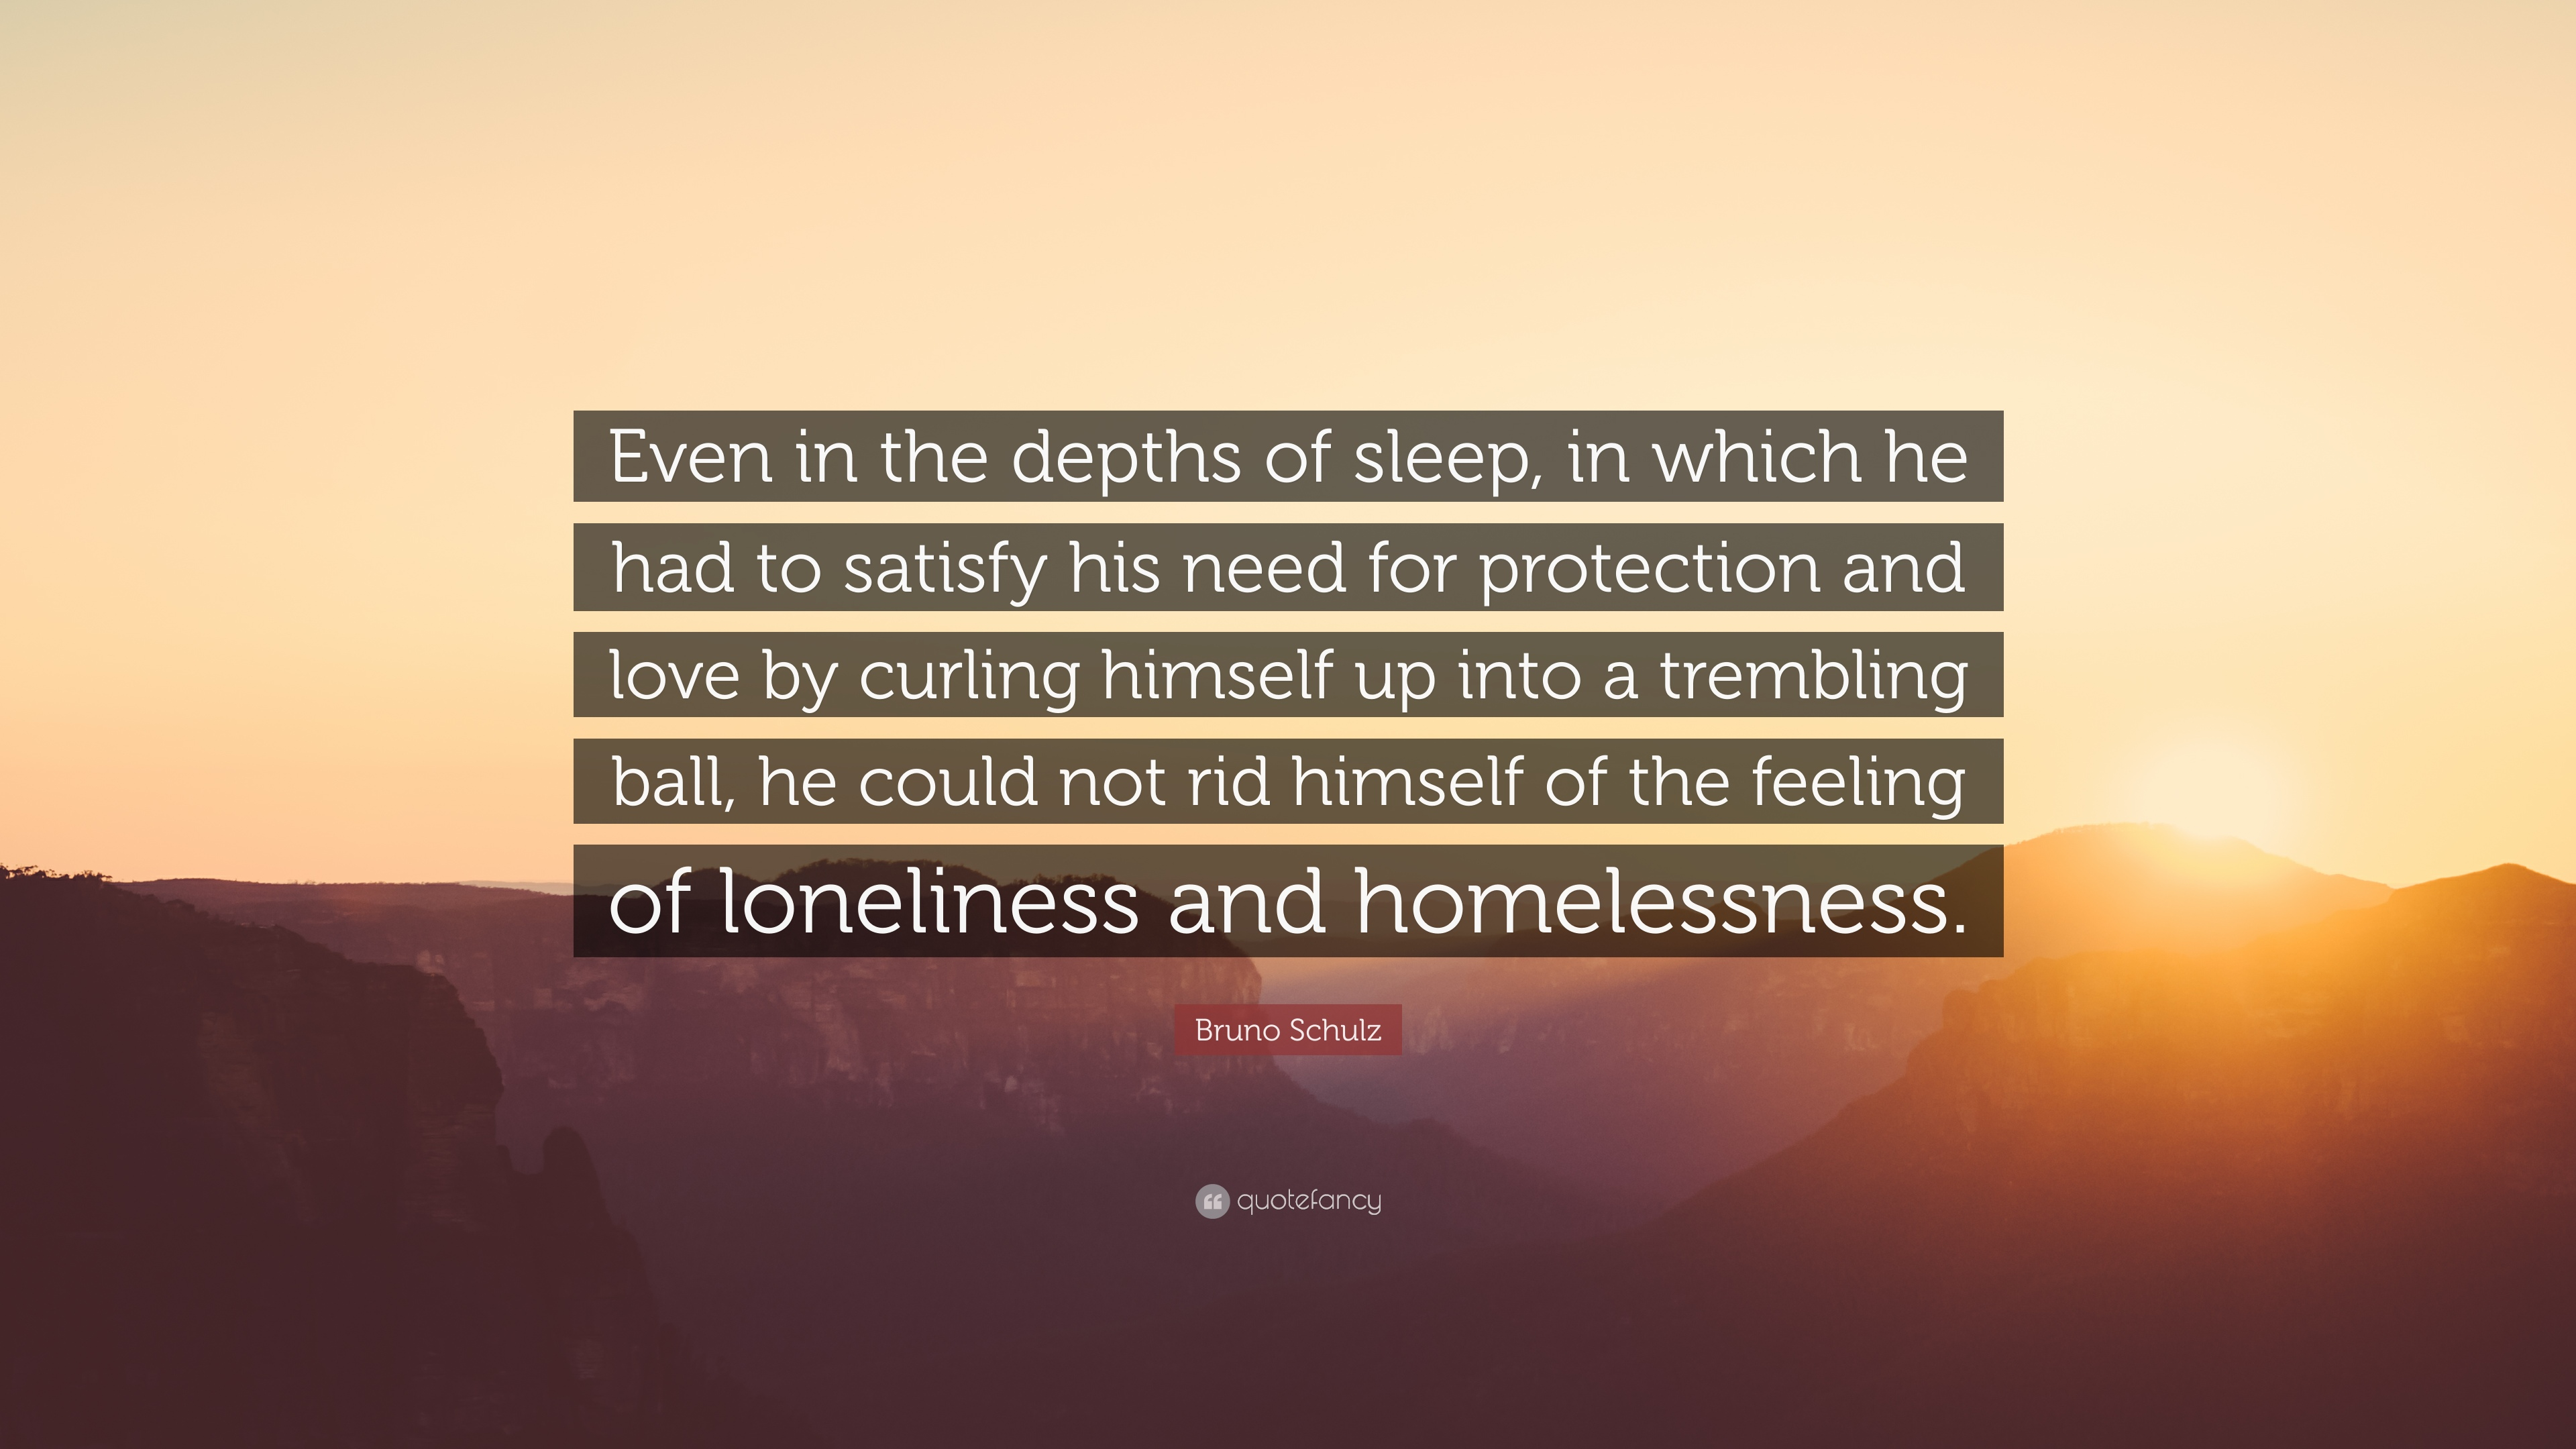 Quotes About Homelessness Bruno Schulz Quotes 19 Wallpapers  Quotefancy